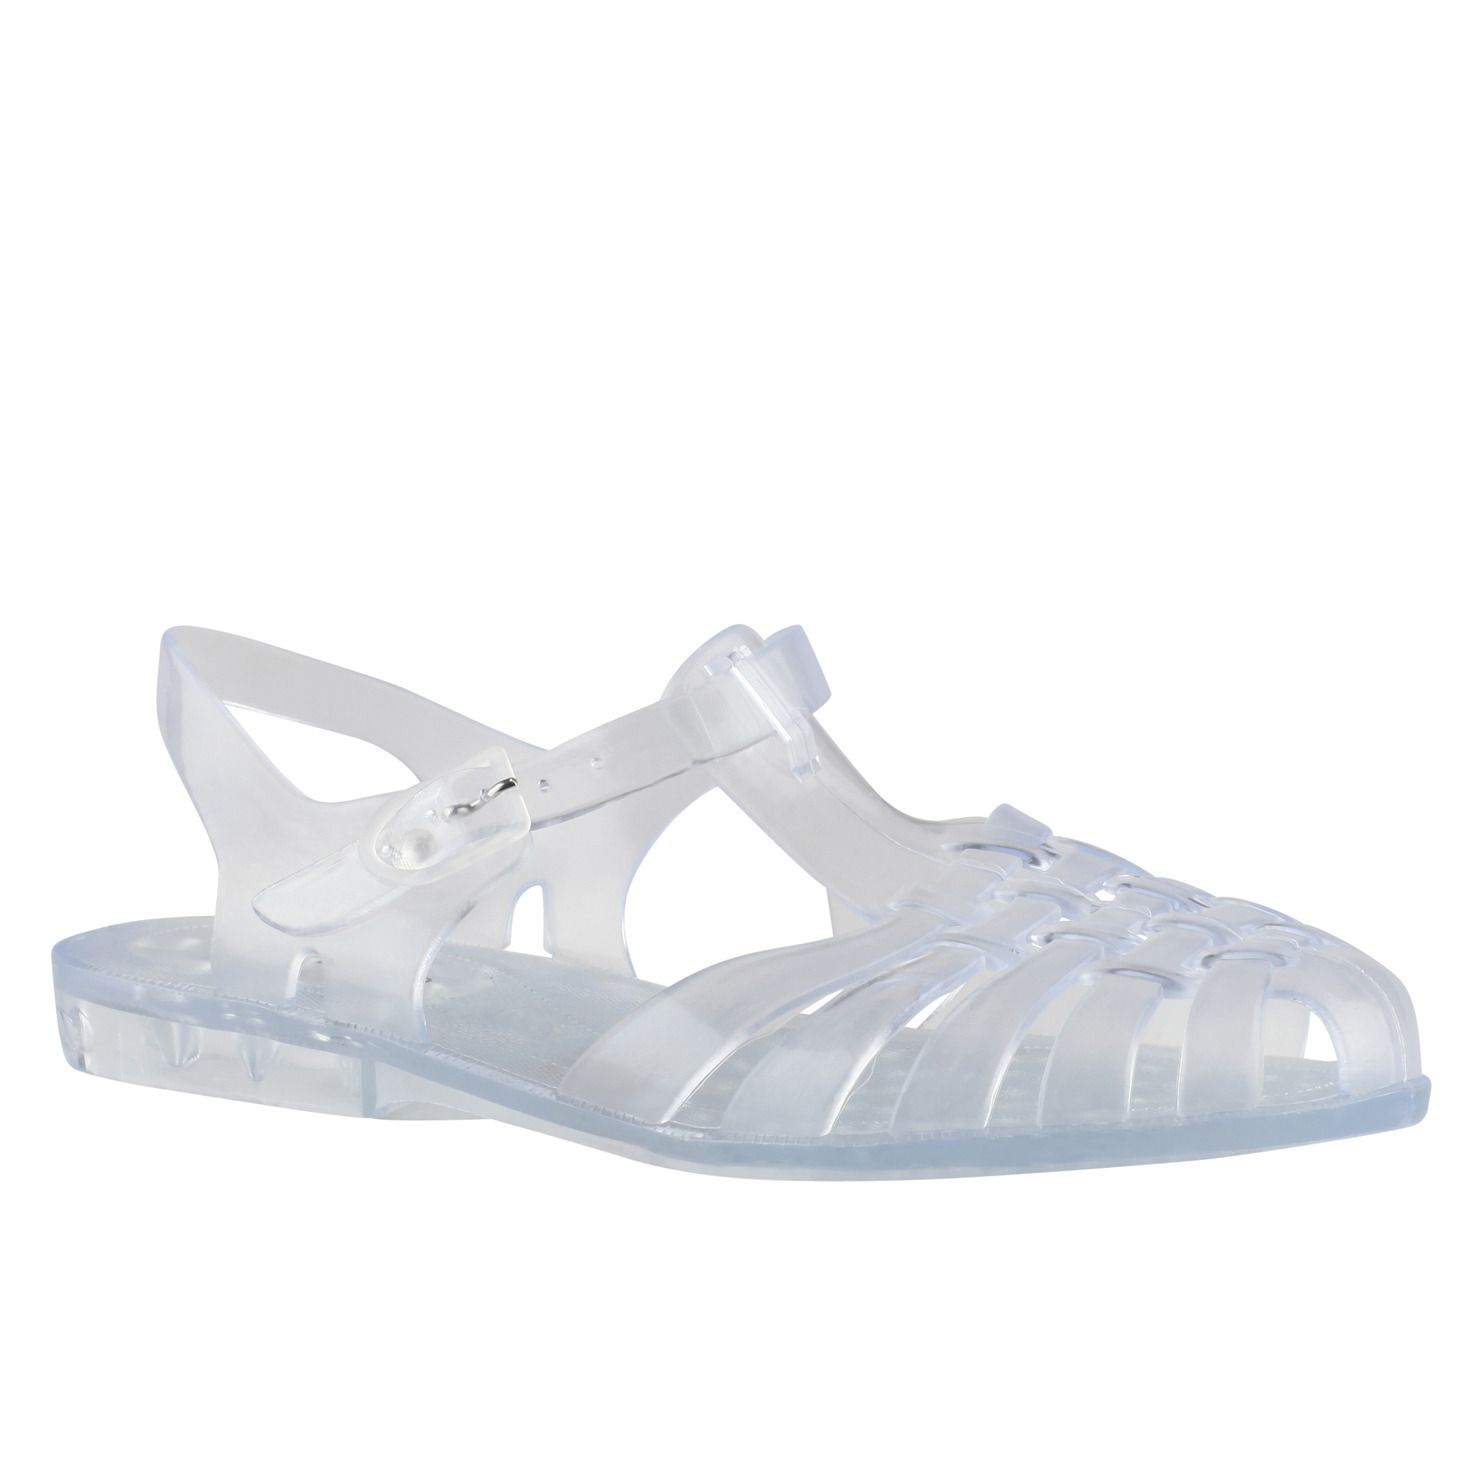 Buy MANDRILE women's sandals flats at CALL IT SPRING. Free Shipping!